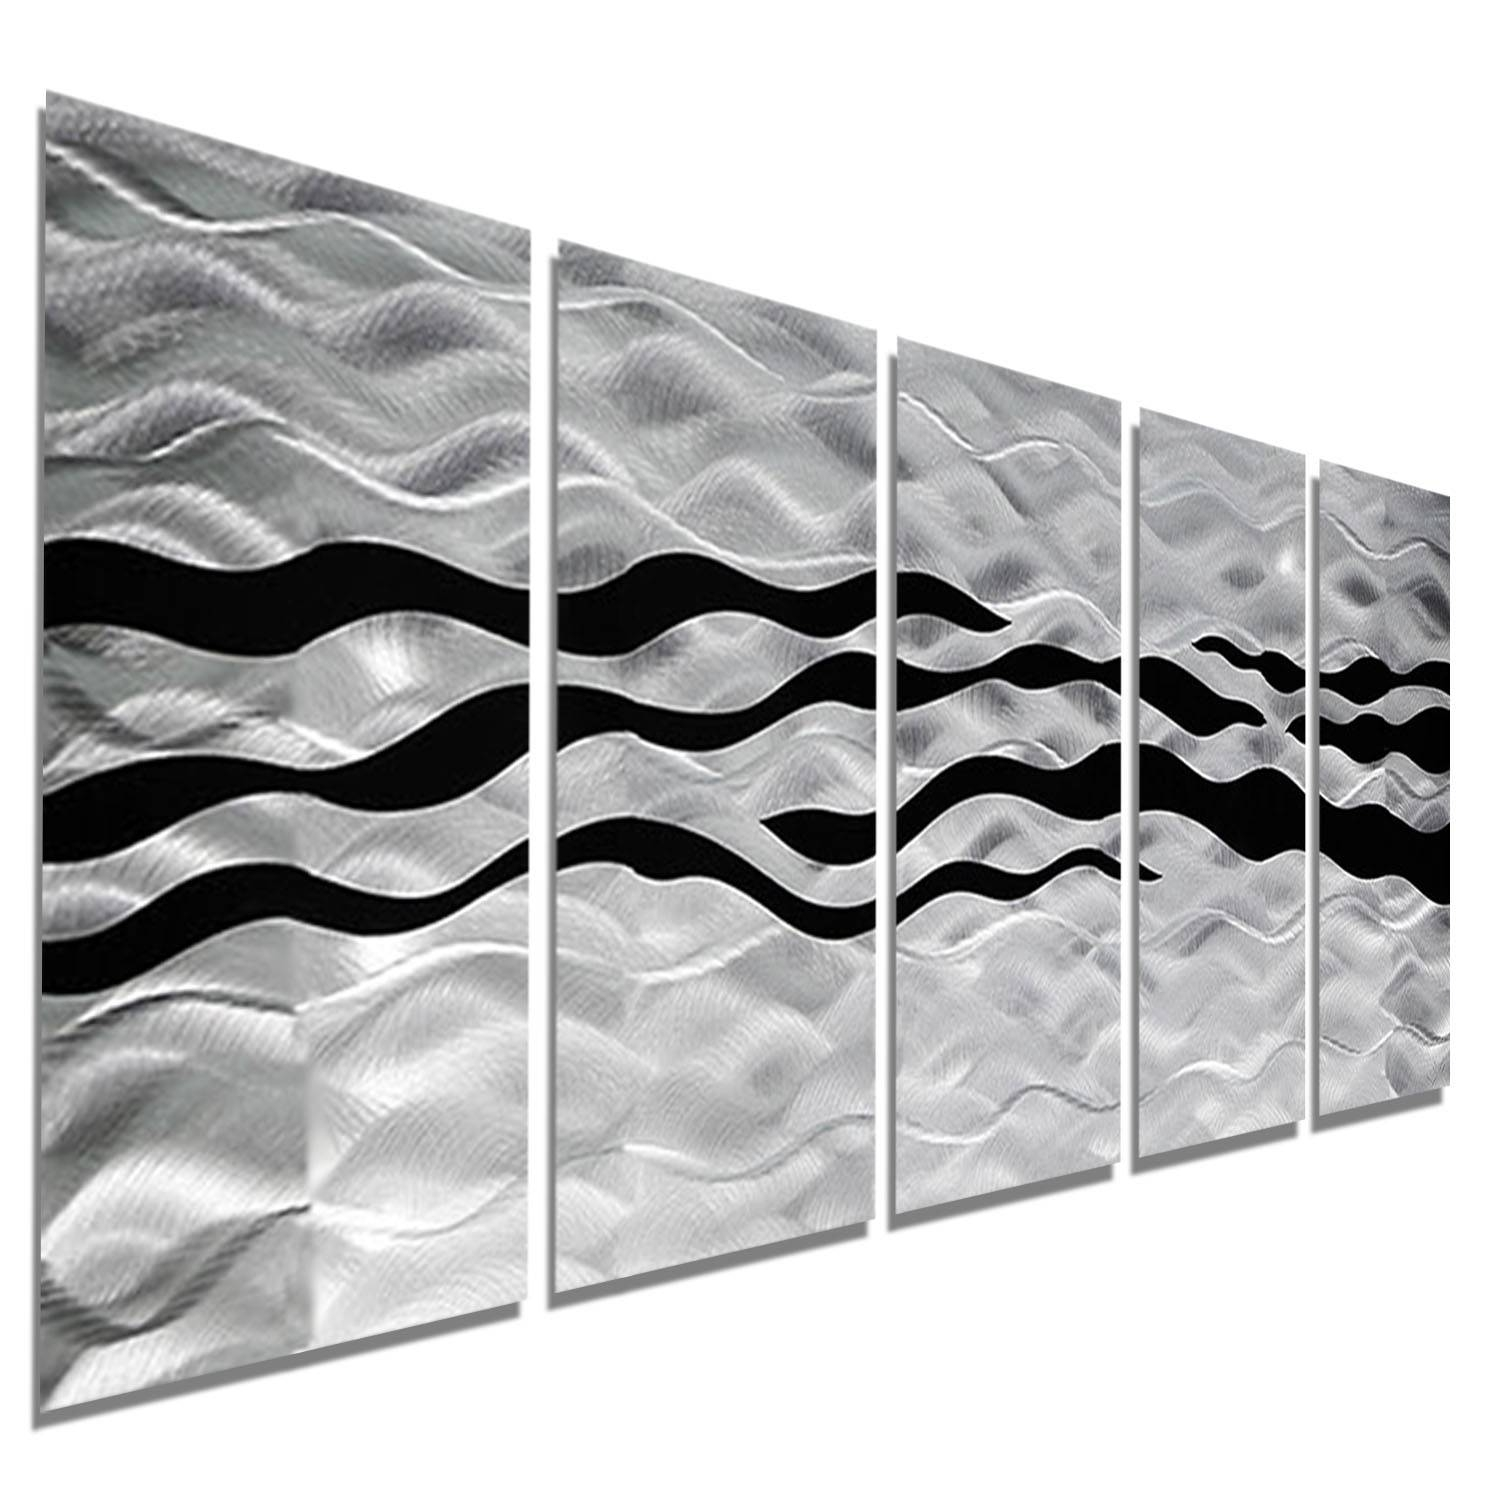 Onyx Oceana – Silver And Black Metal Wall Art – 5 Panel Wall Décor For Most Up To Date Black Silver Wall Art (View 8 of 20)